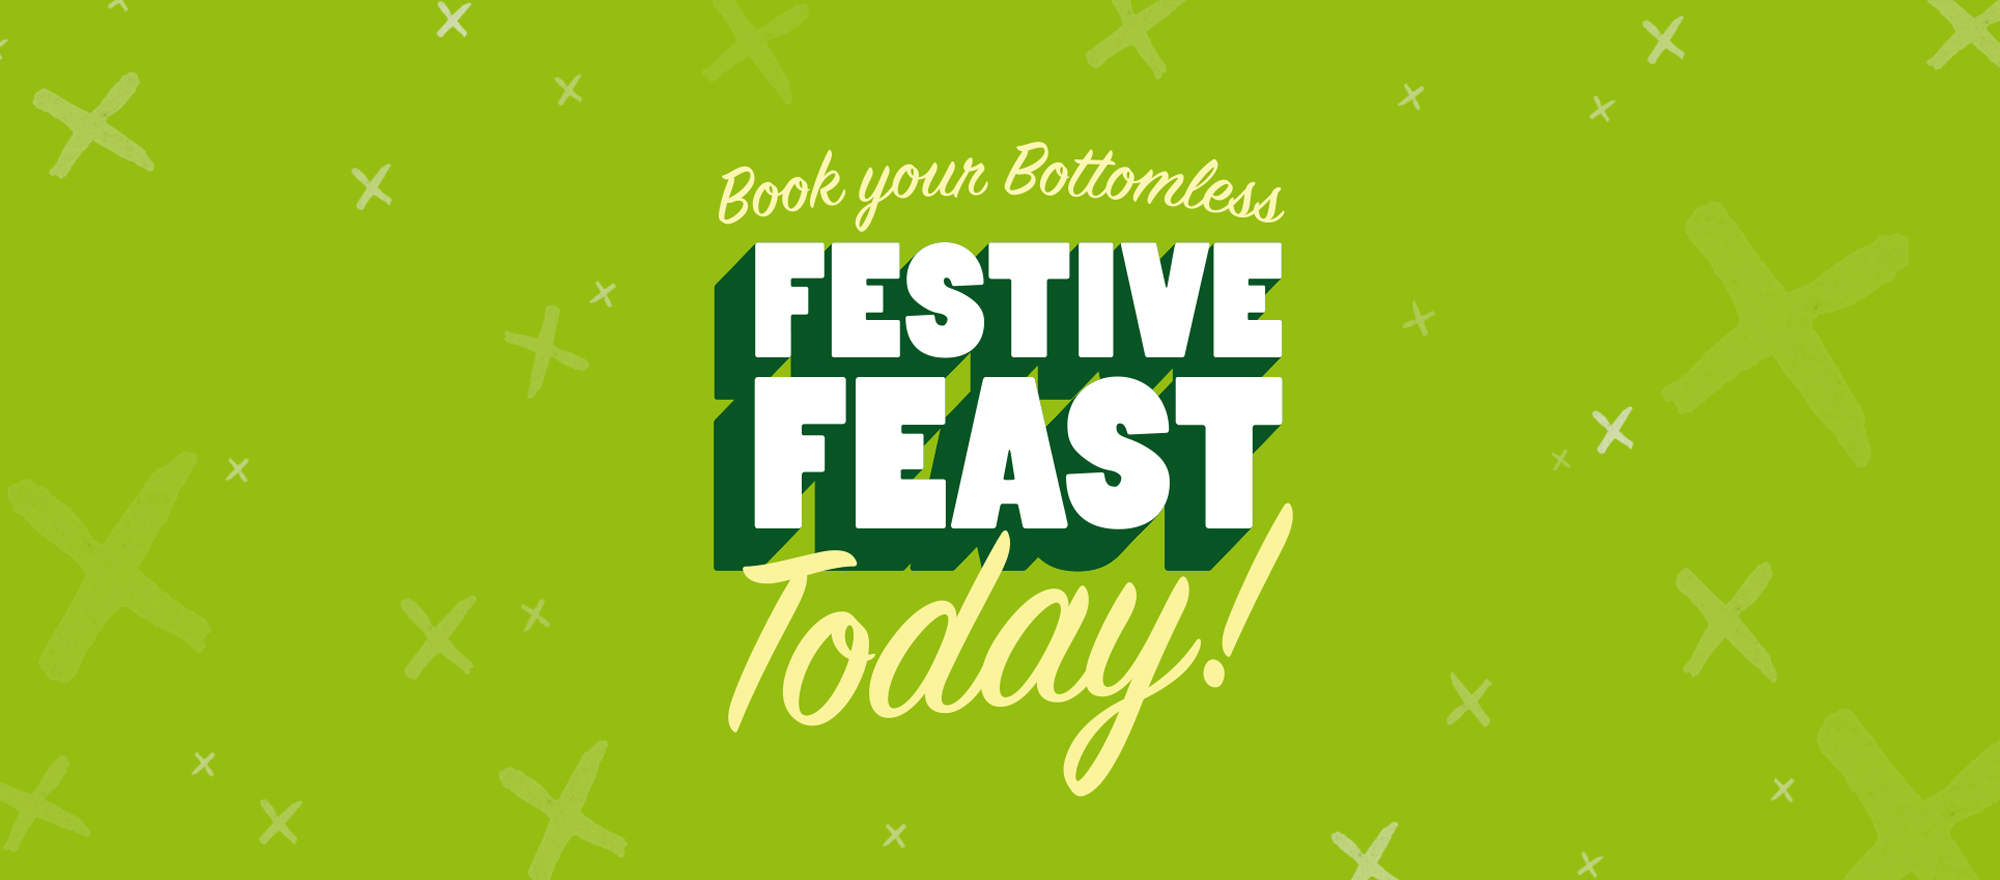 Book Your Bottomless Festive Feast Today